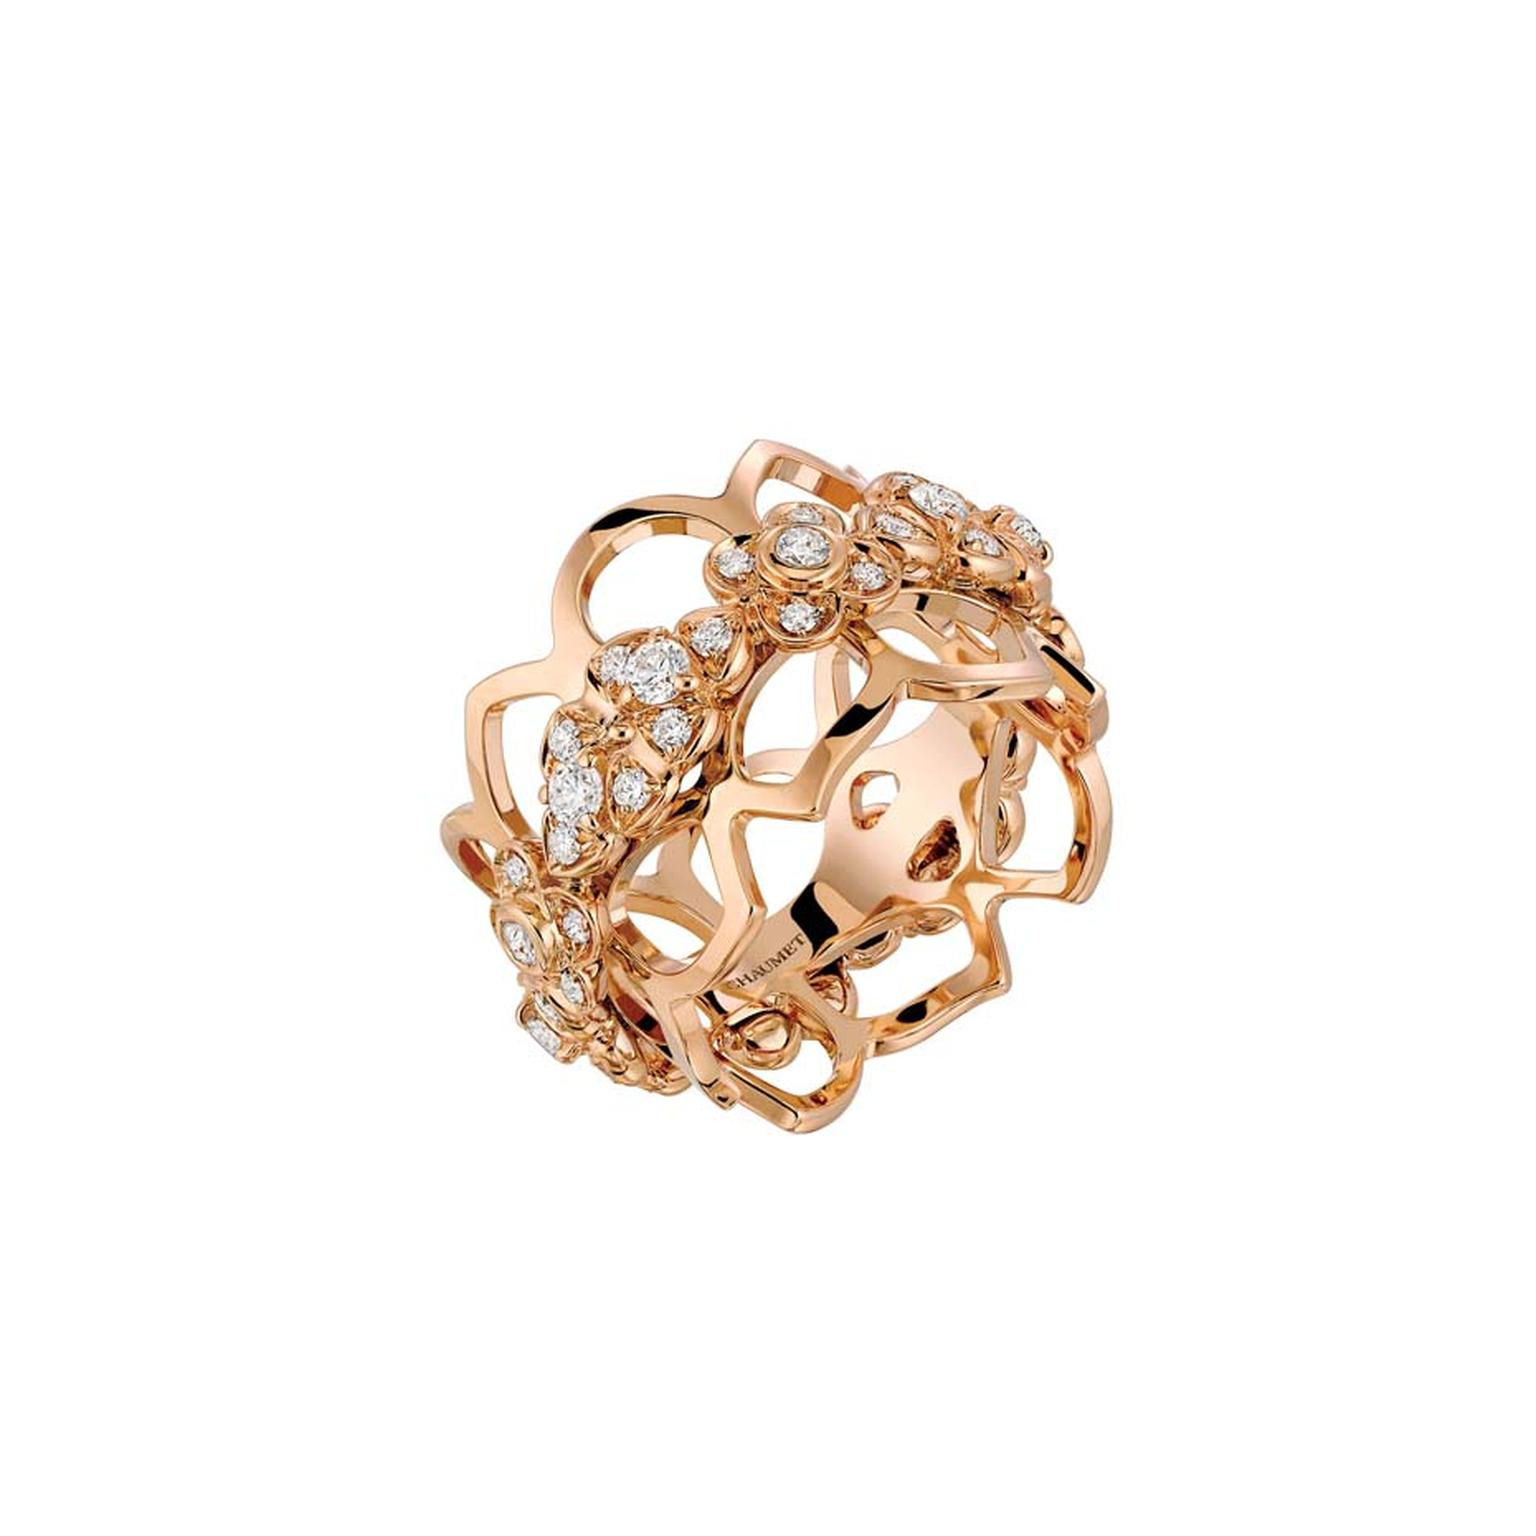 Chaumet rose gold and diamond ring from the Hortensia fine jewellery collection.